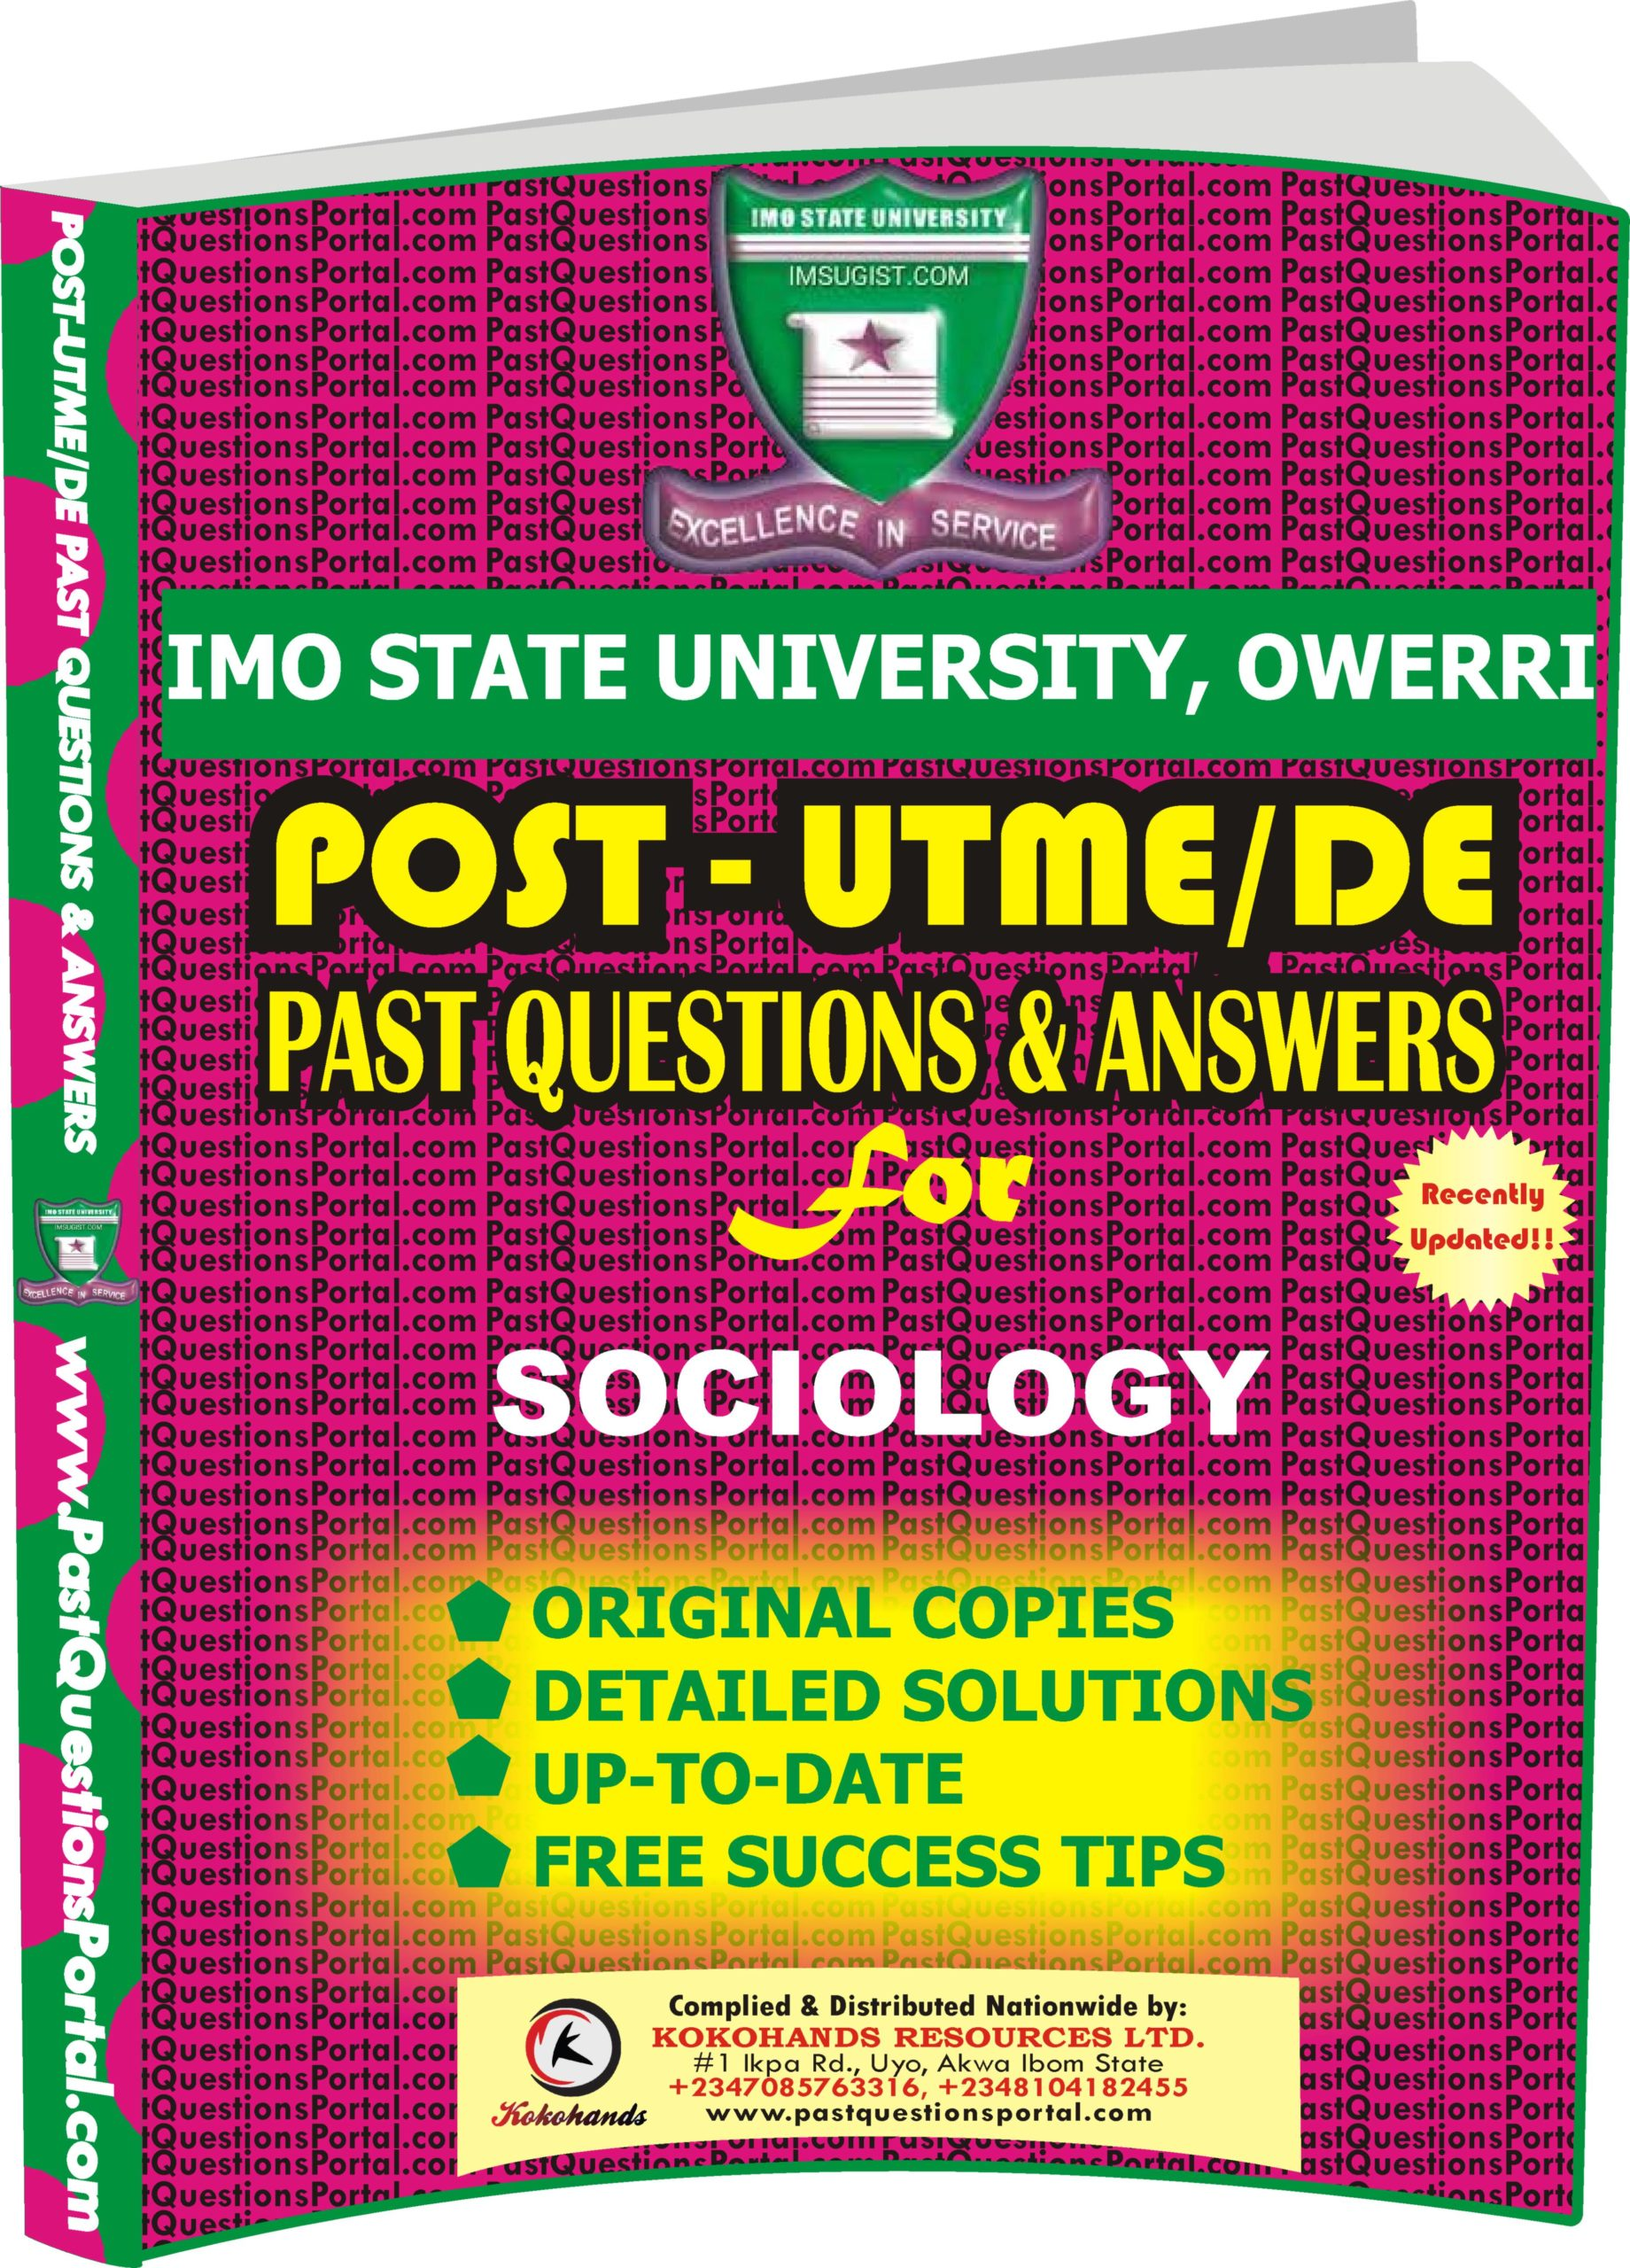 IMSU Post UTME Past Questions for SOCIOLOGY